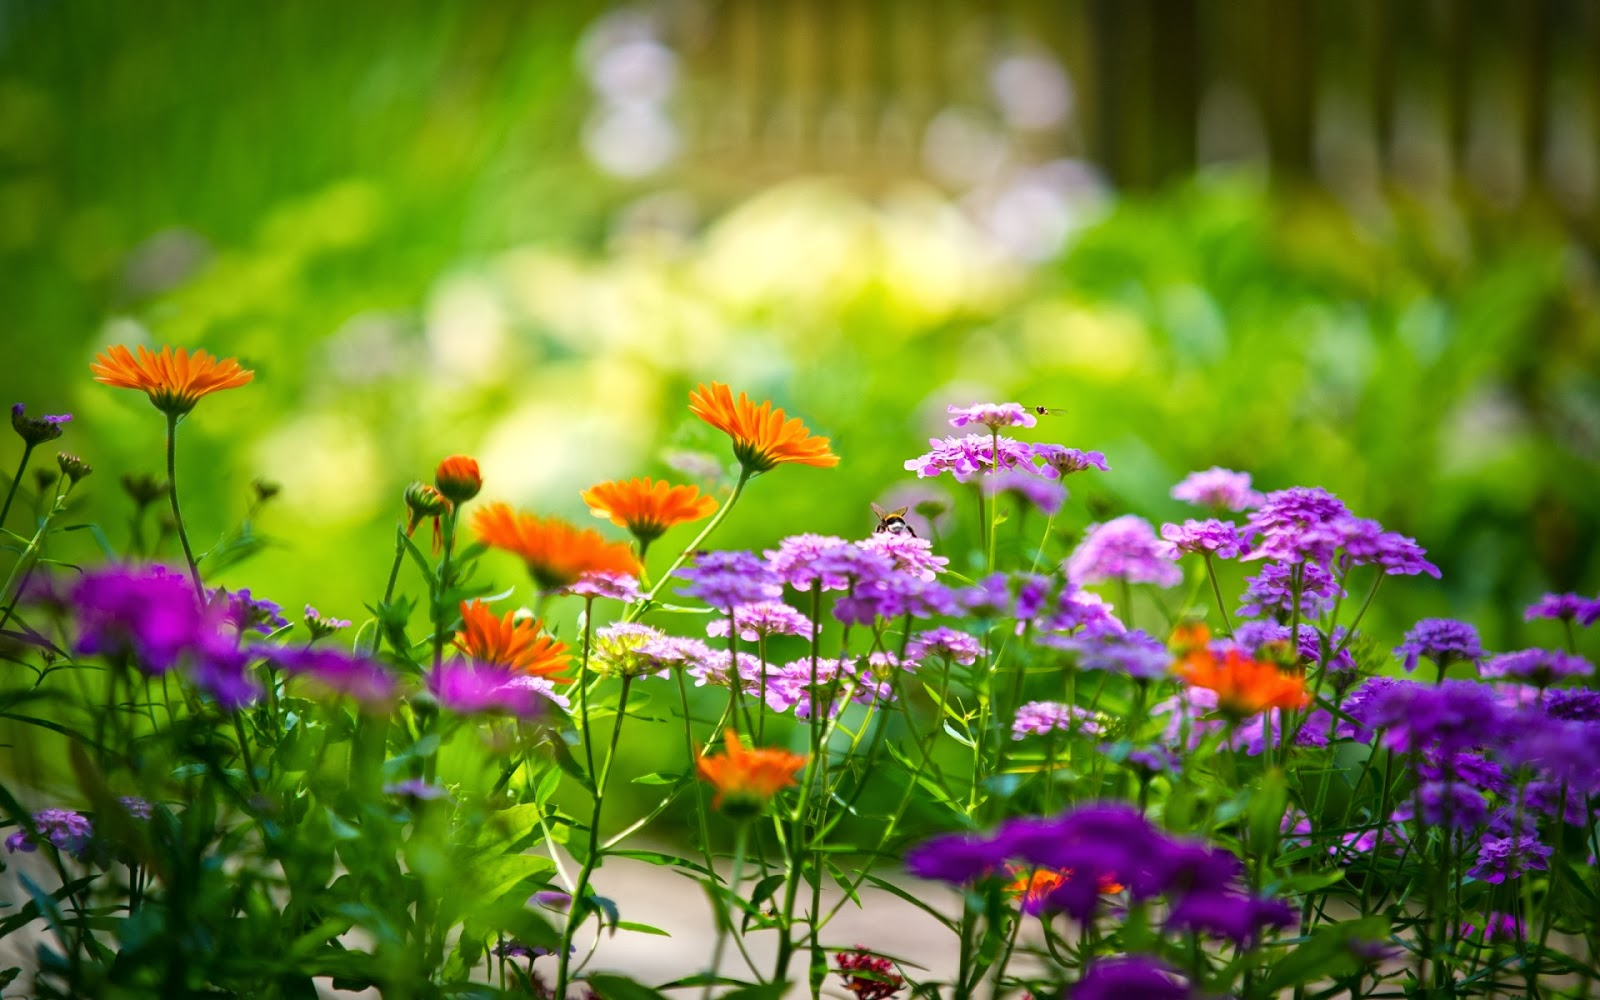 STAR HD PHOTOS: Spring Flowers HD Wallpapers